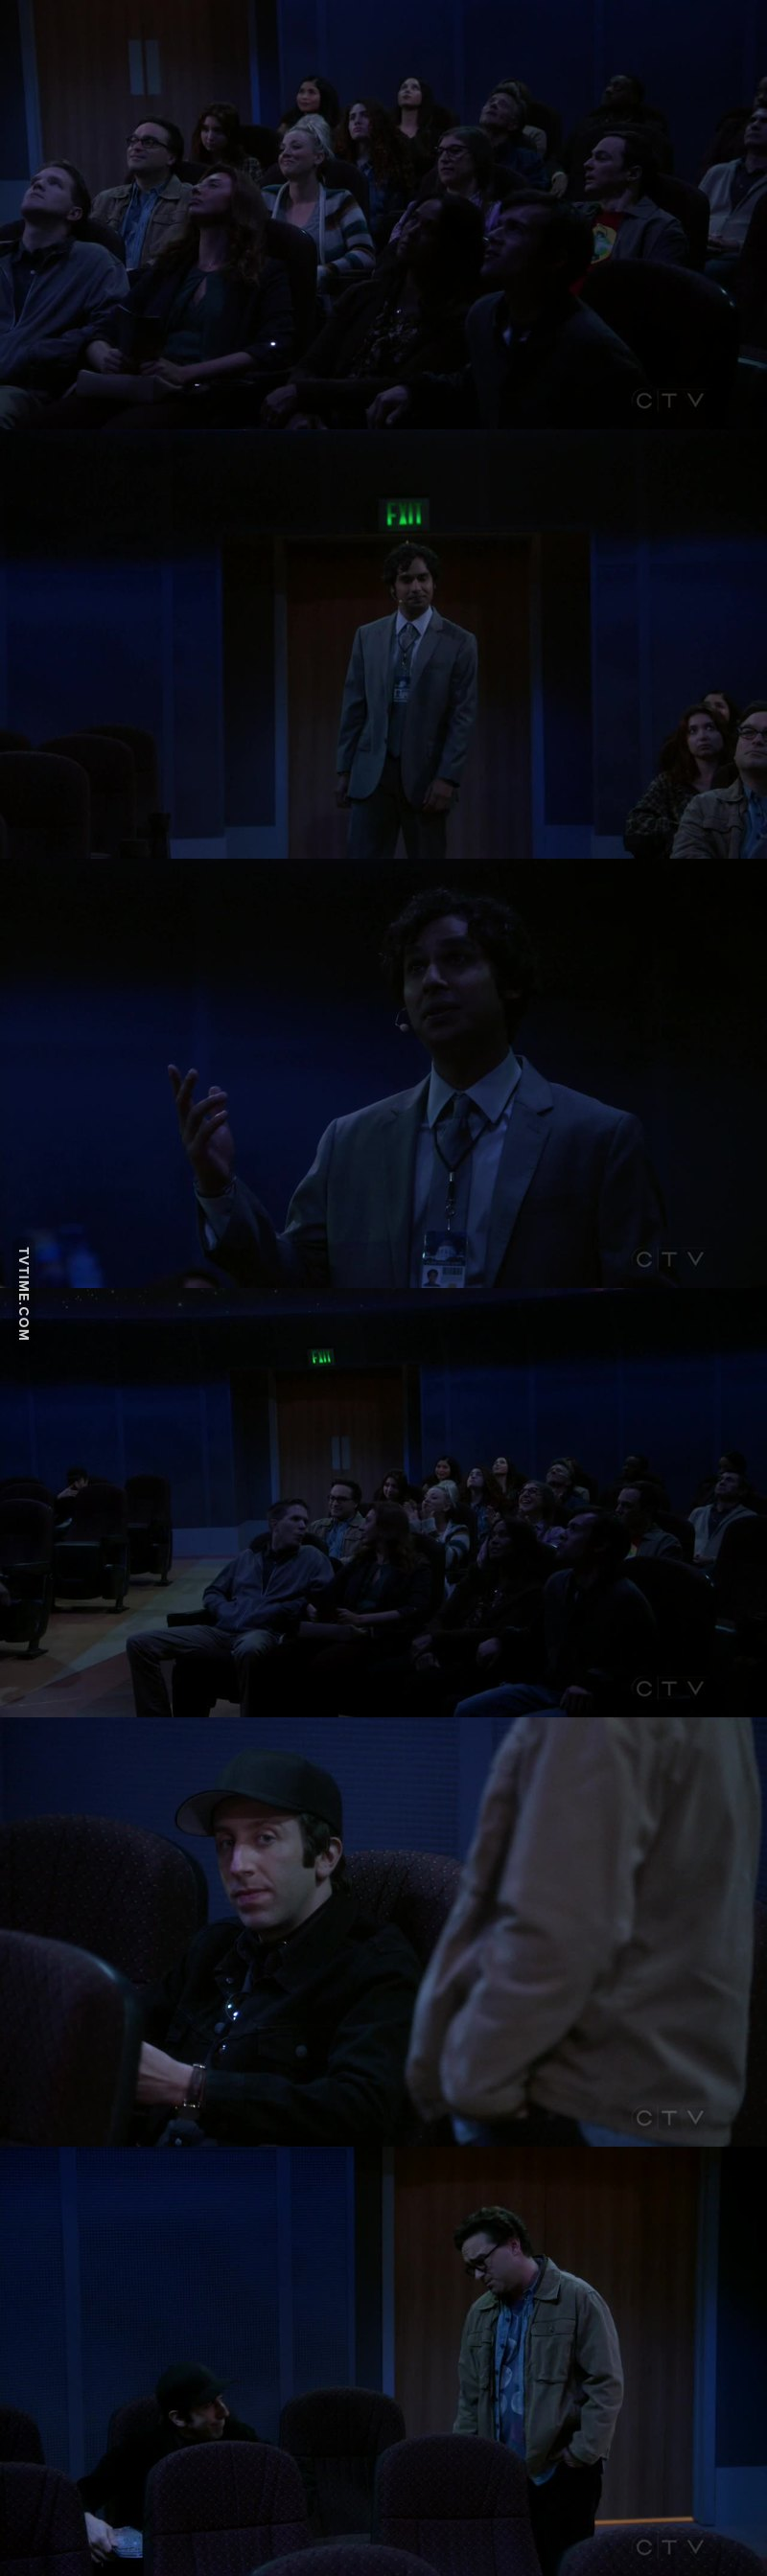 I'm happy for Raj. It actually made me feel bad for Howard but that was sweet to see him like that for once.